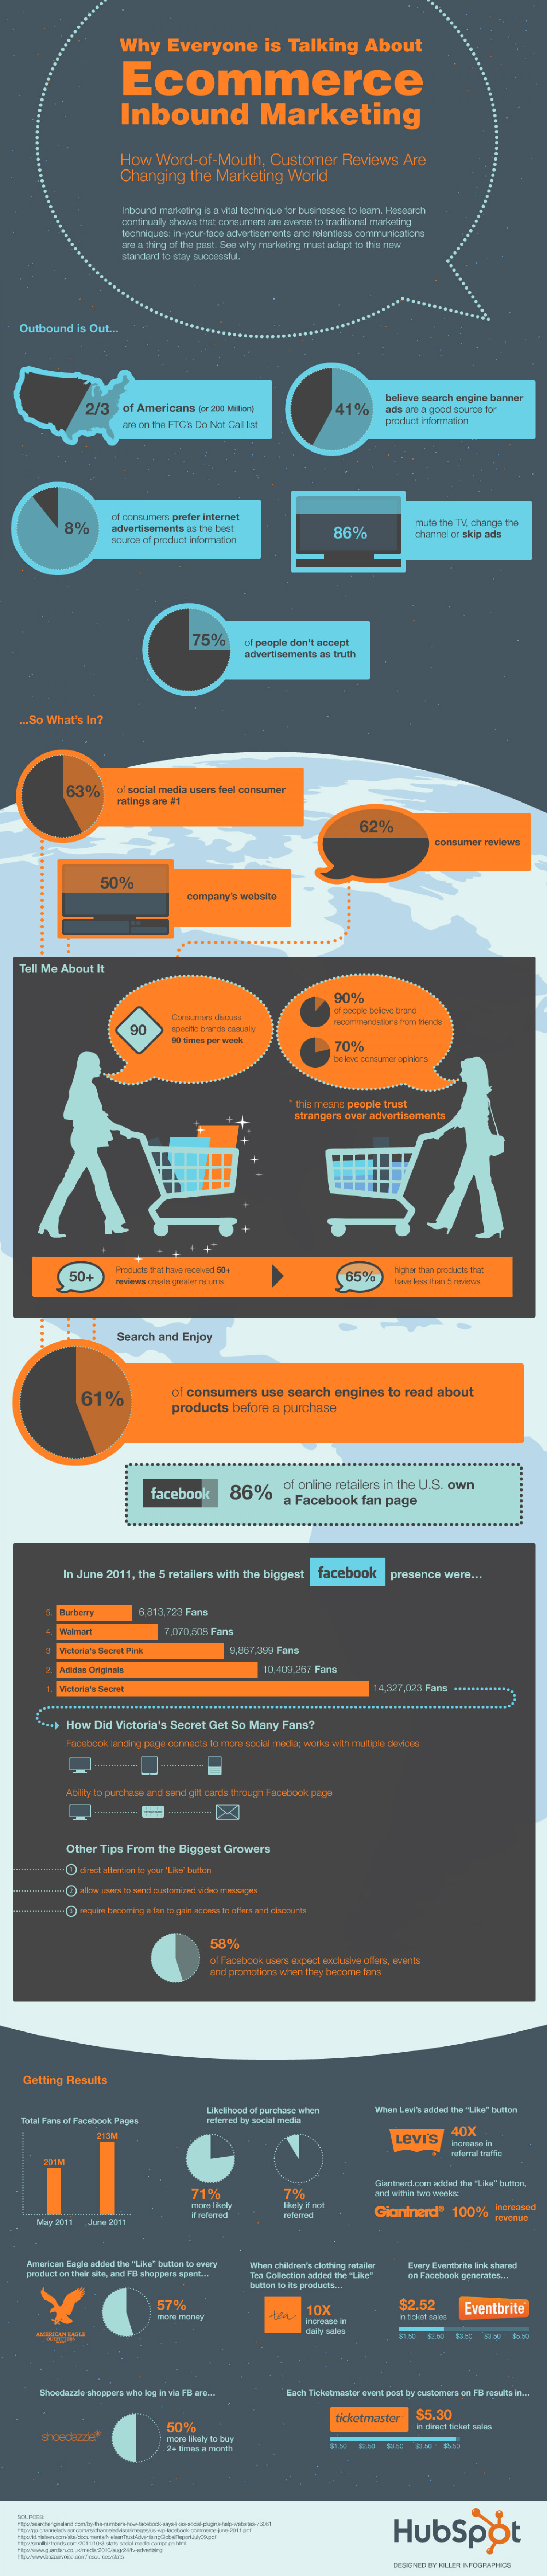 71% More Likely to Purchase Based on Social Media Referrals Infographic